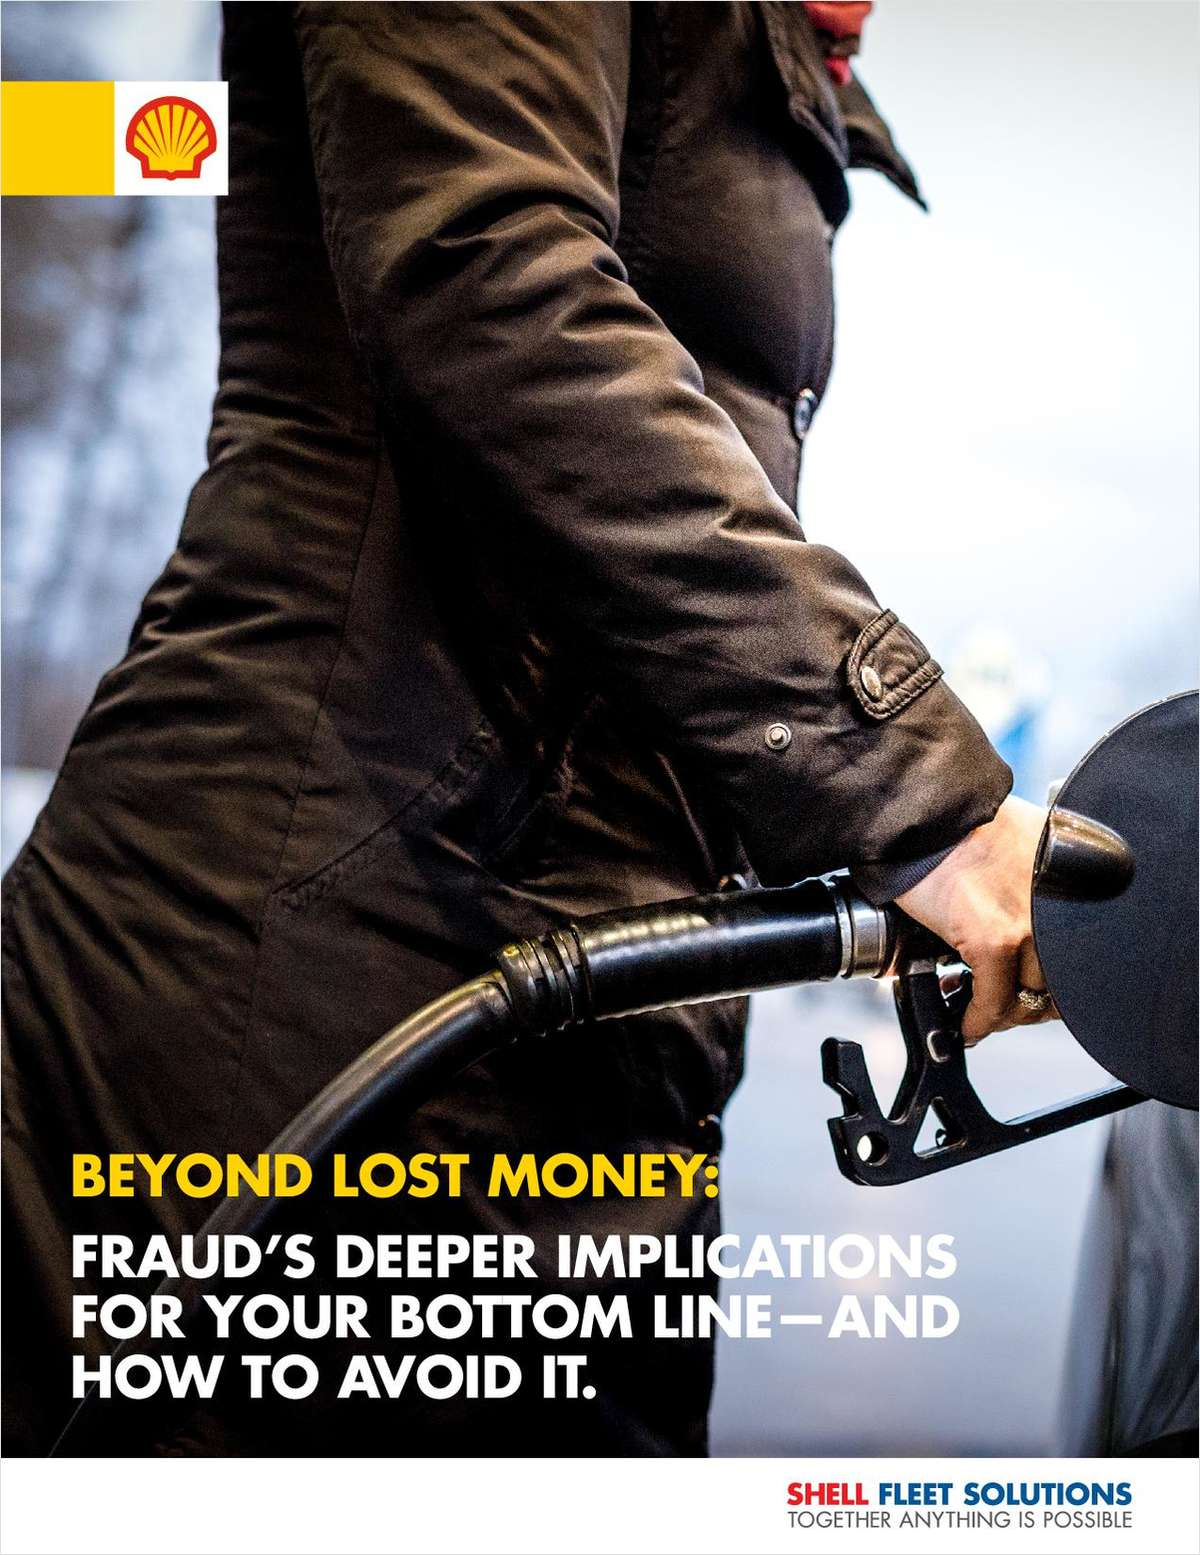 Beyond Lost Money: Fraud's Deeper Implications for Your Bottom Line--and How to Avoid It